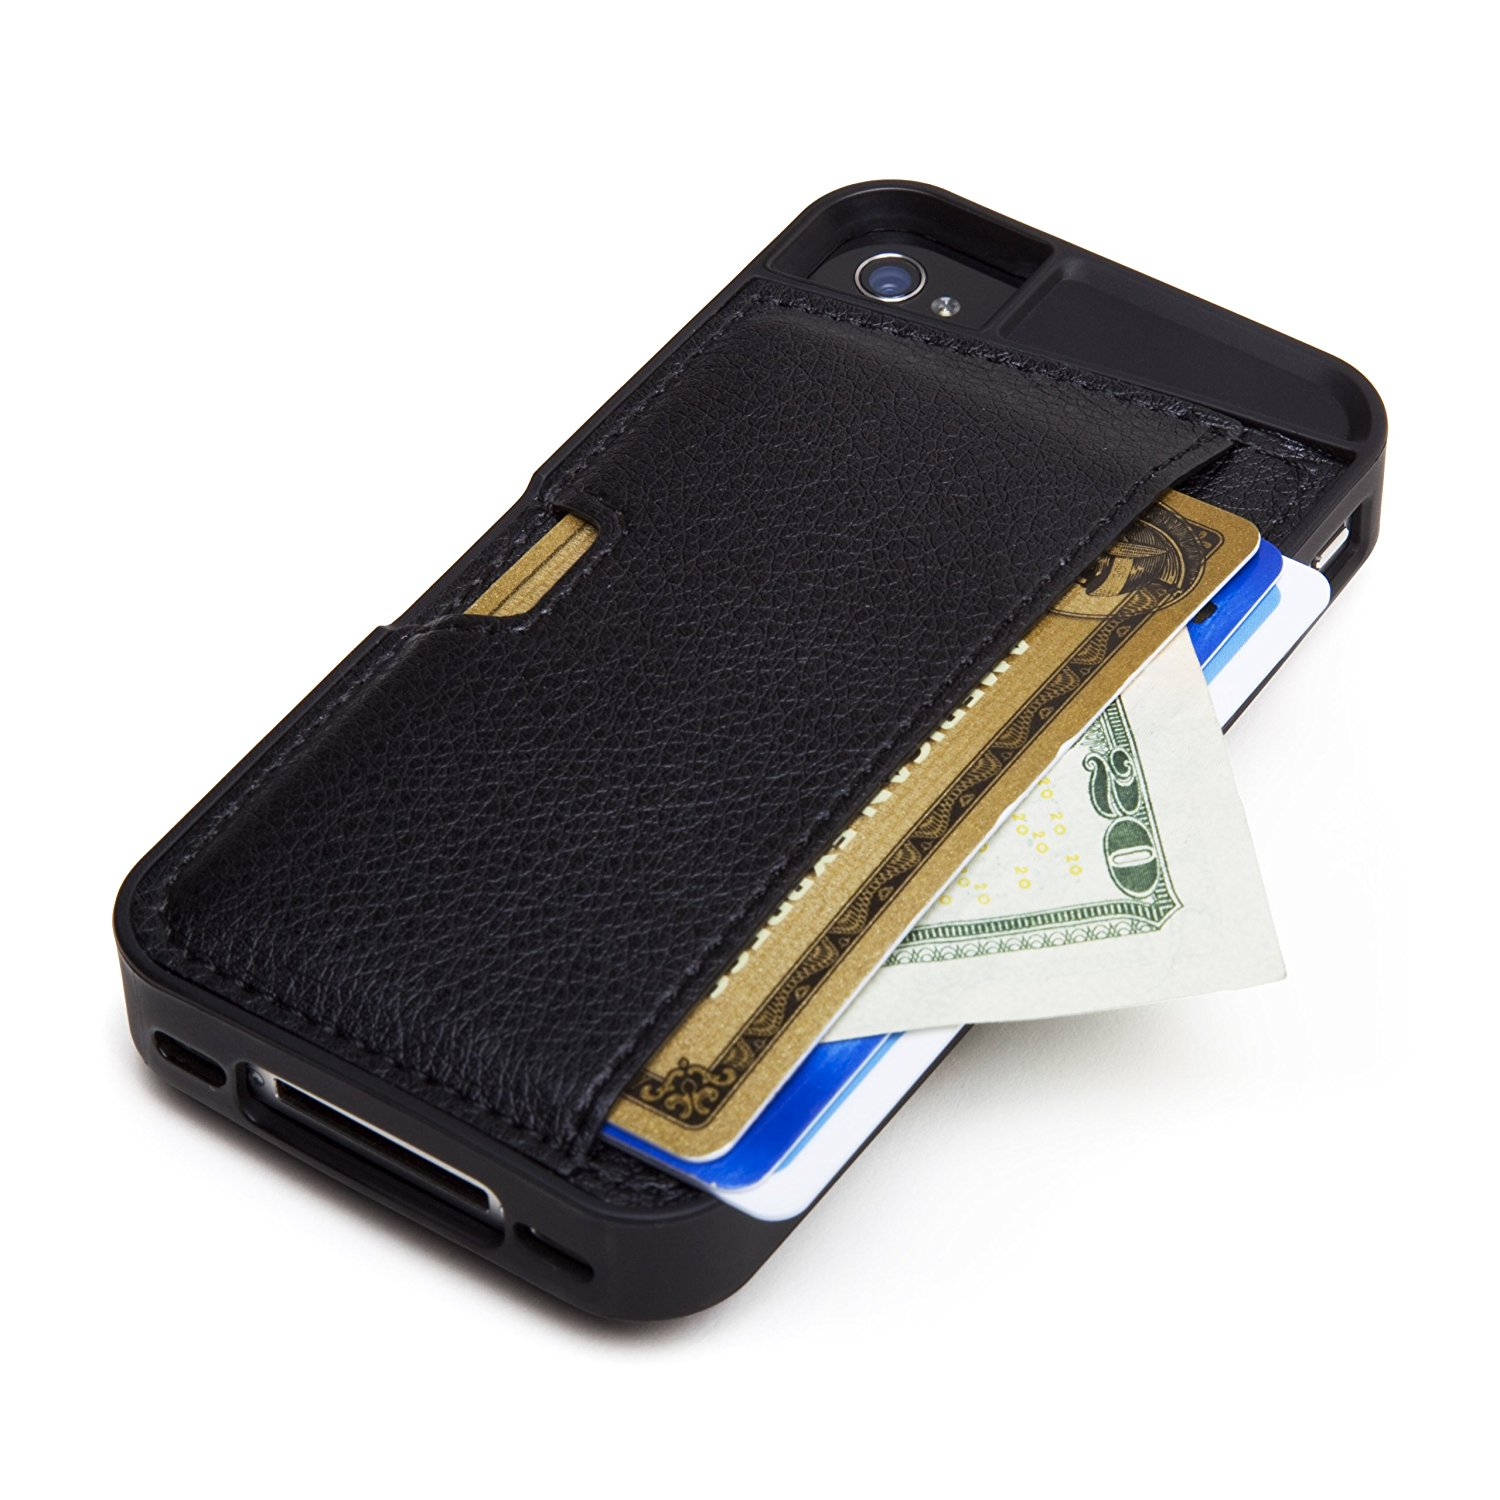 CM4 Q4-BLACK iPhone Wallet Card Case for iPhone 4/4s - 1 ...